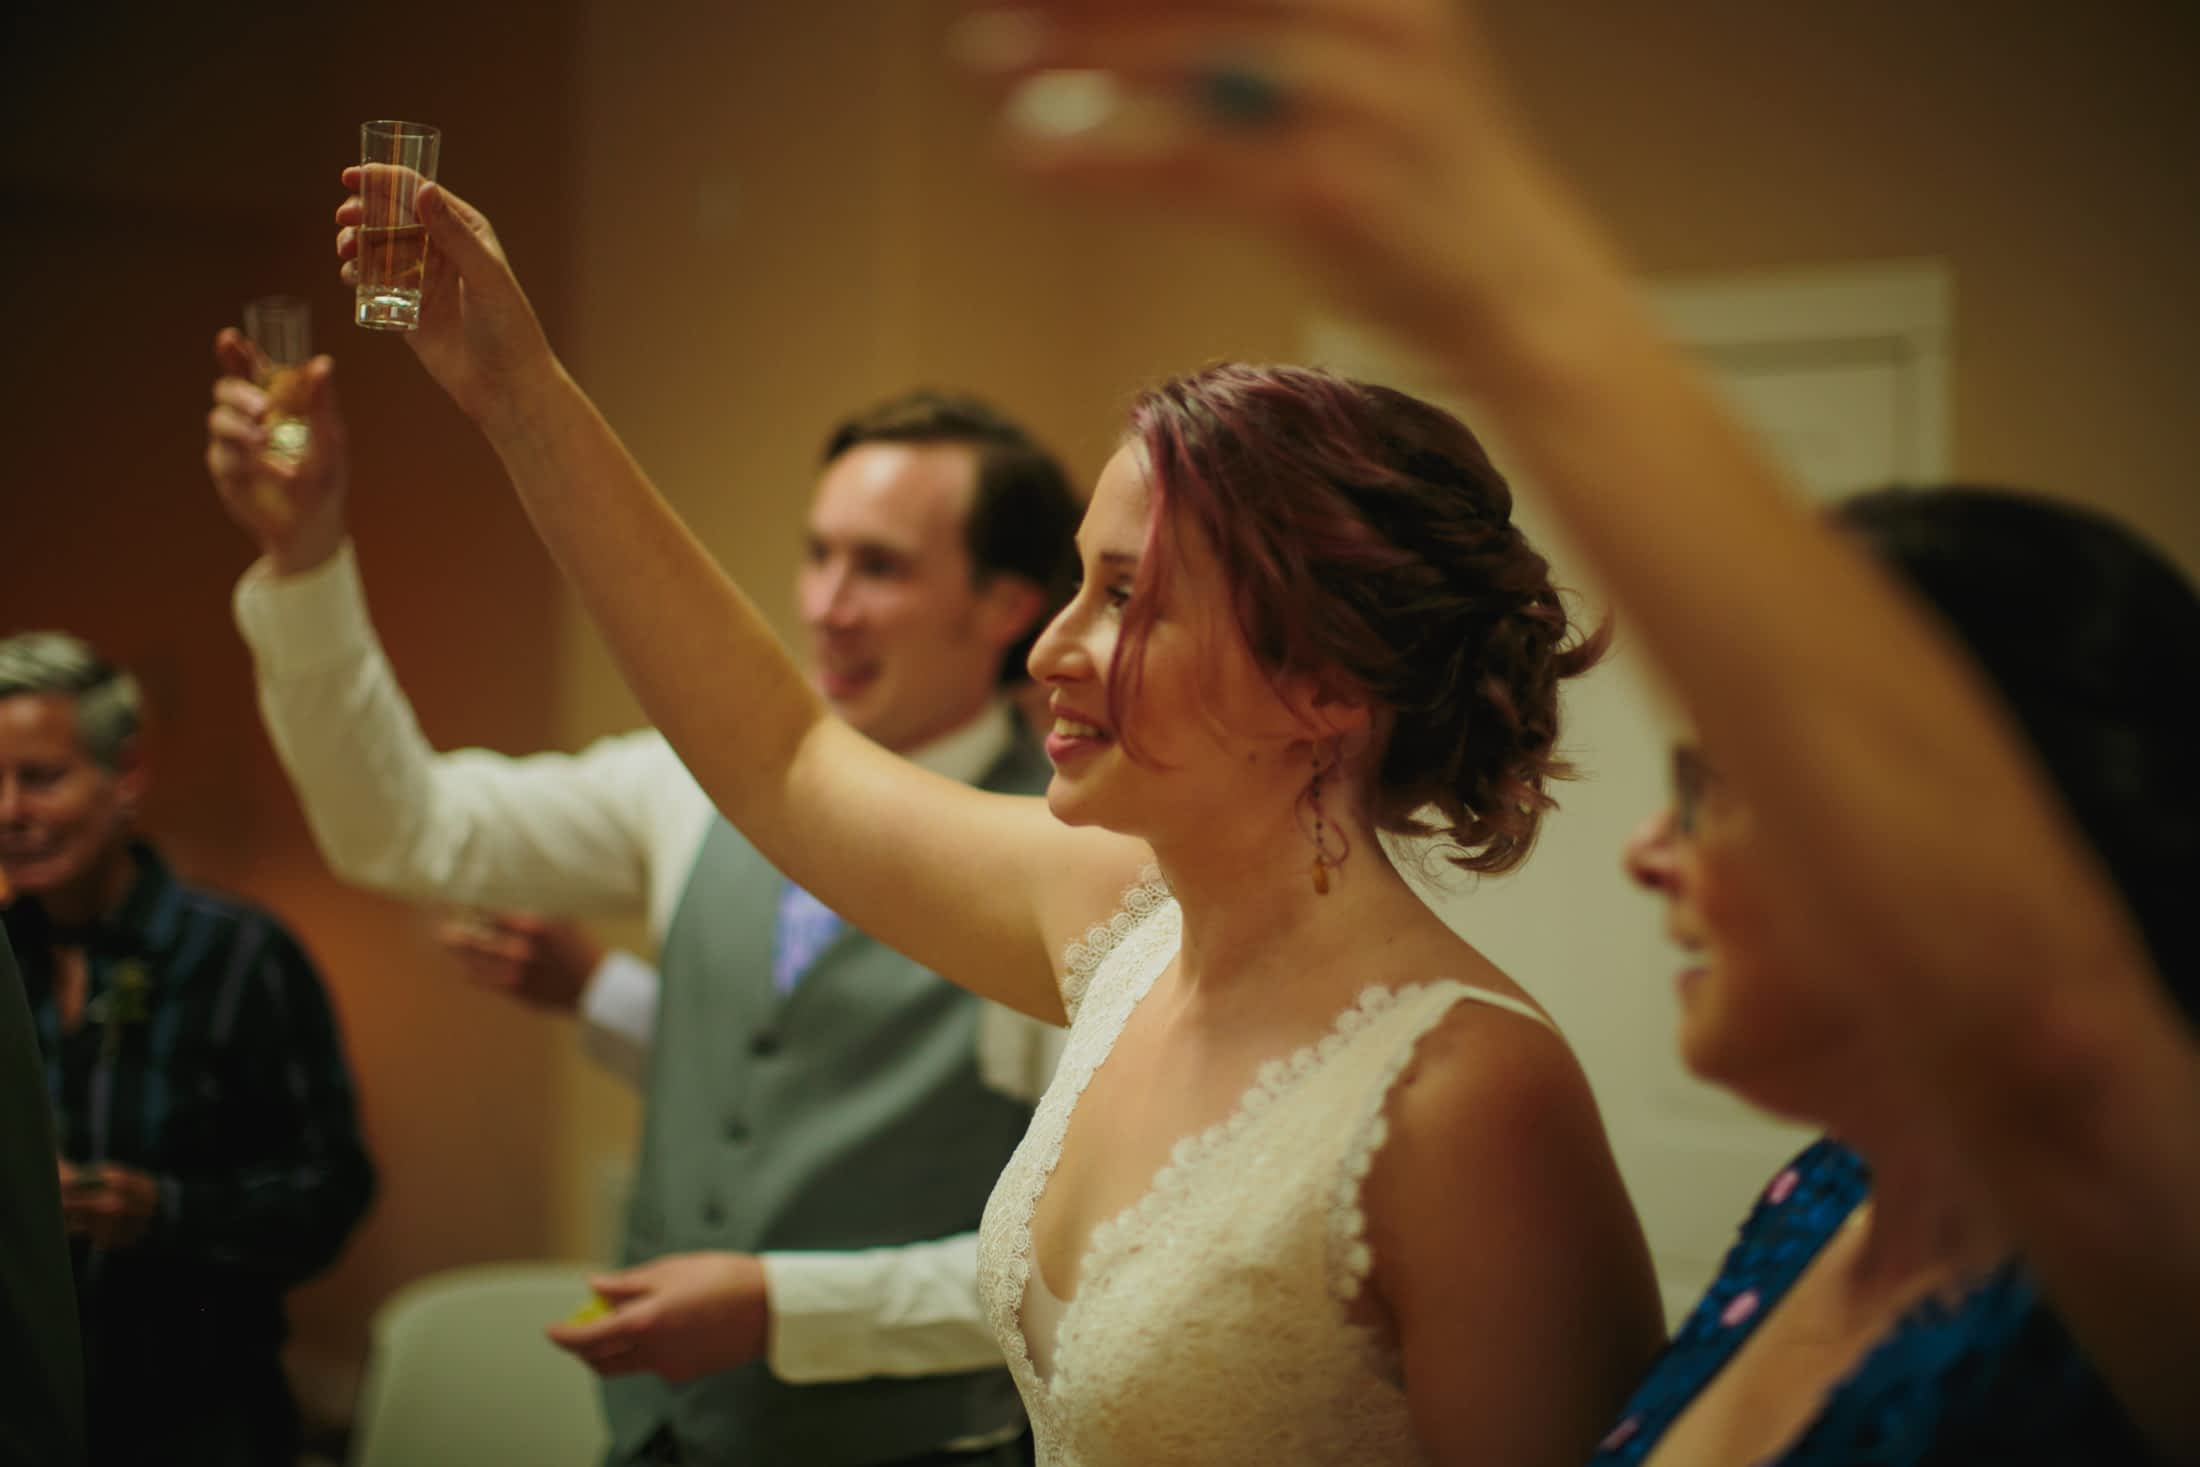 Bride and groom toasting with their family while doing a shot of tequila before their wedding ceremony.